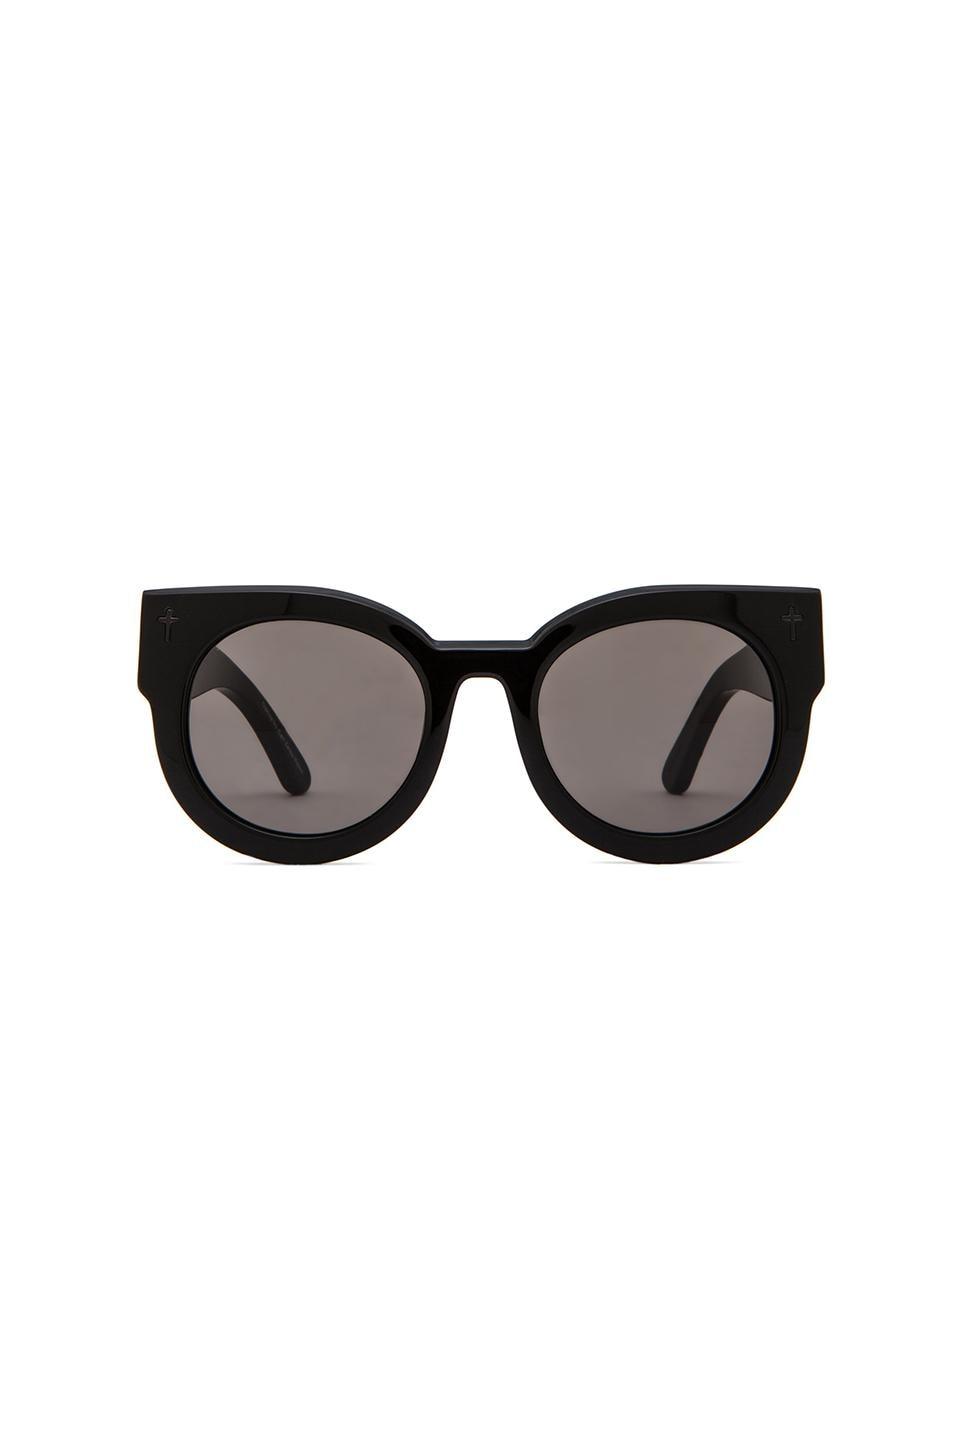 VALLEY EYEWEAR A Dead Coffin Club in Gloss Black & Black Lens